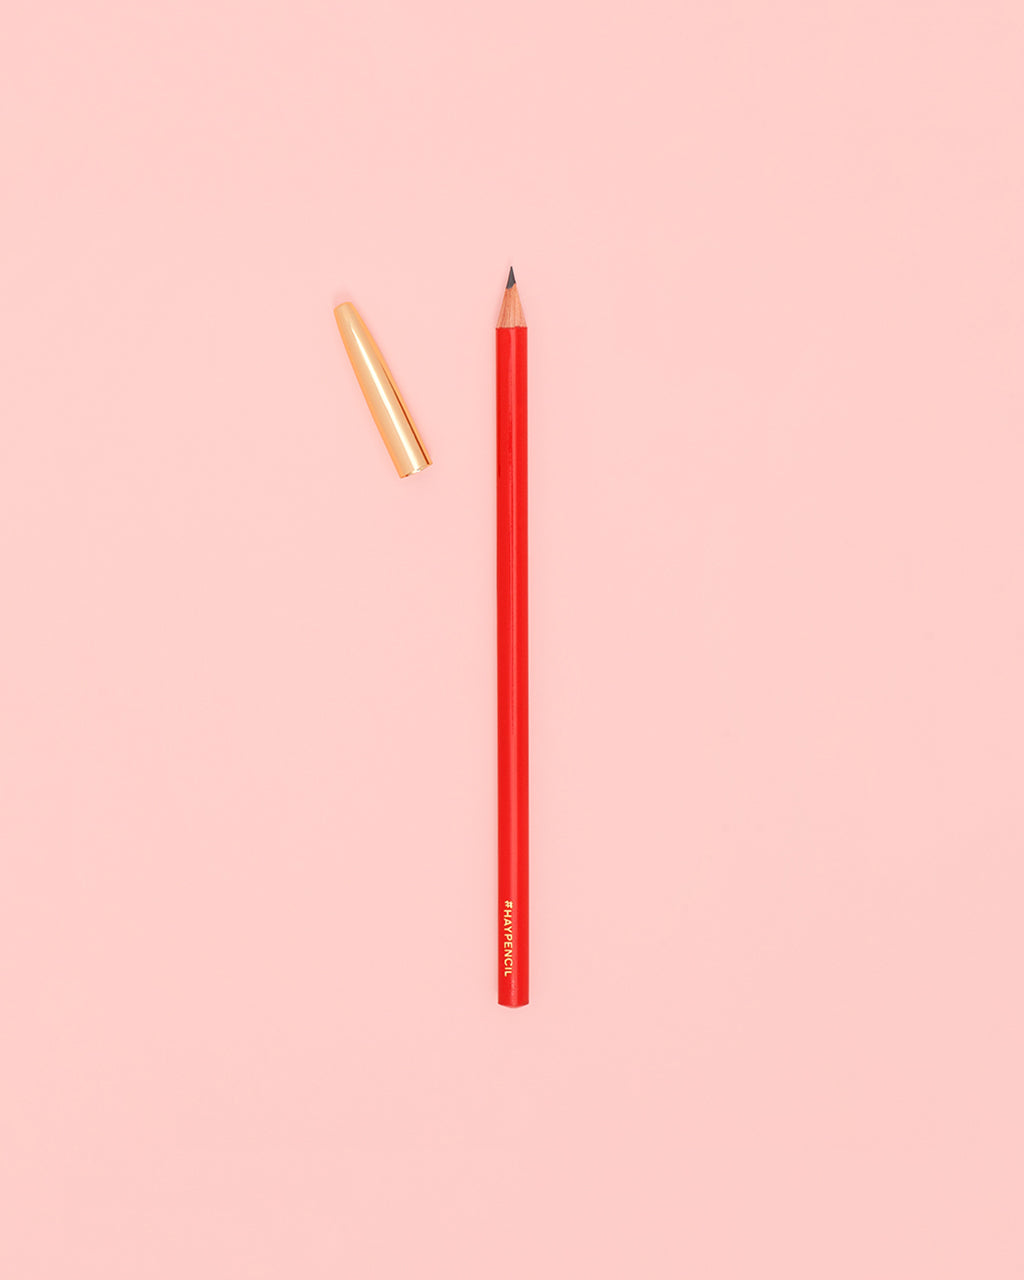 Red pencil with gold cap off to the side.